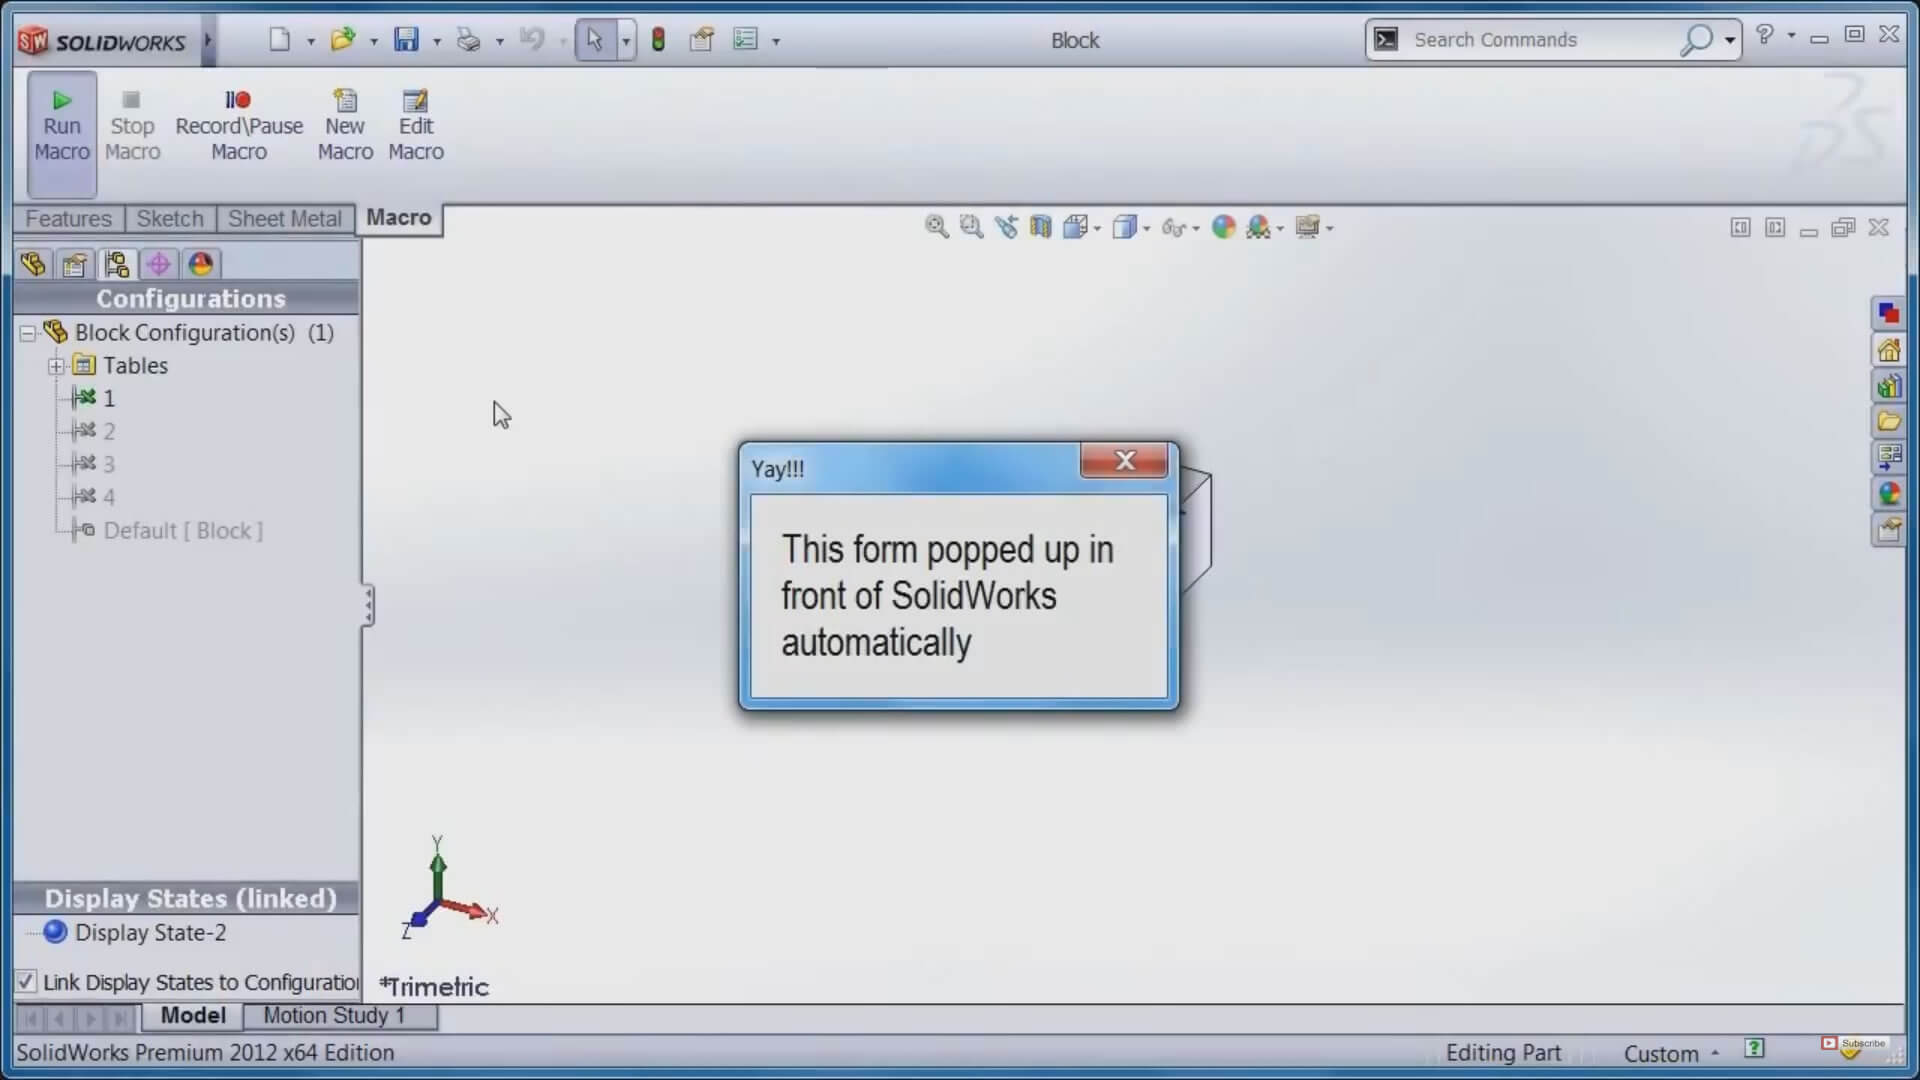 SOLIDWORKS Popup Dialog Window